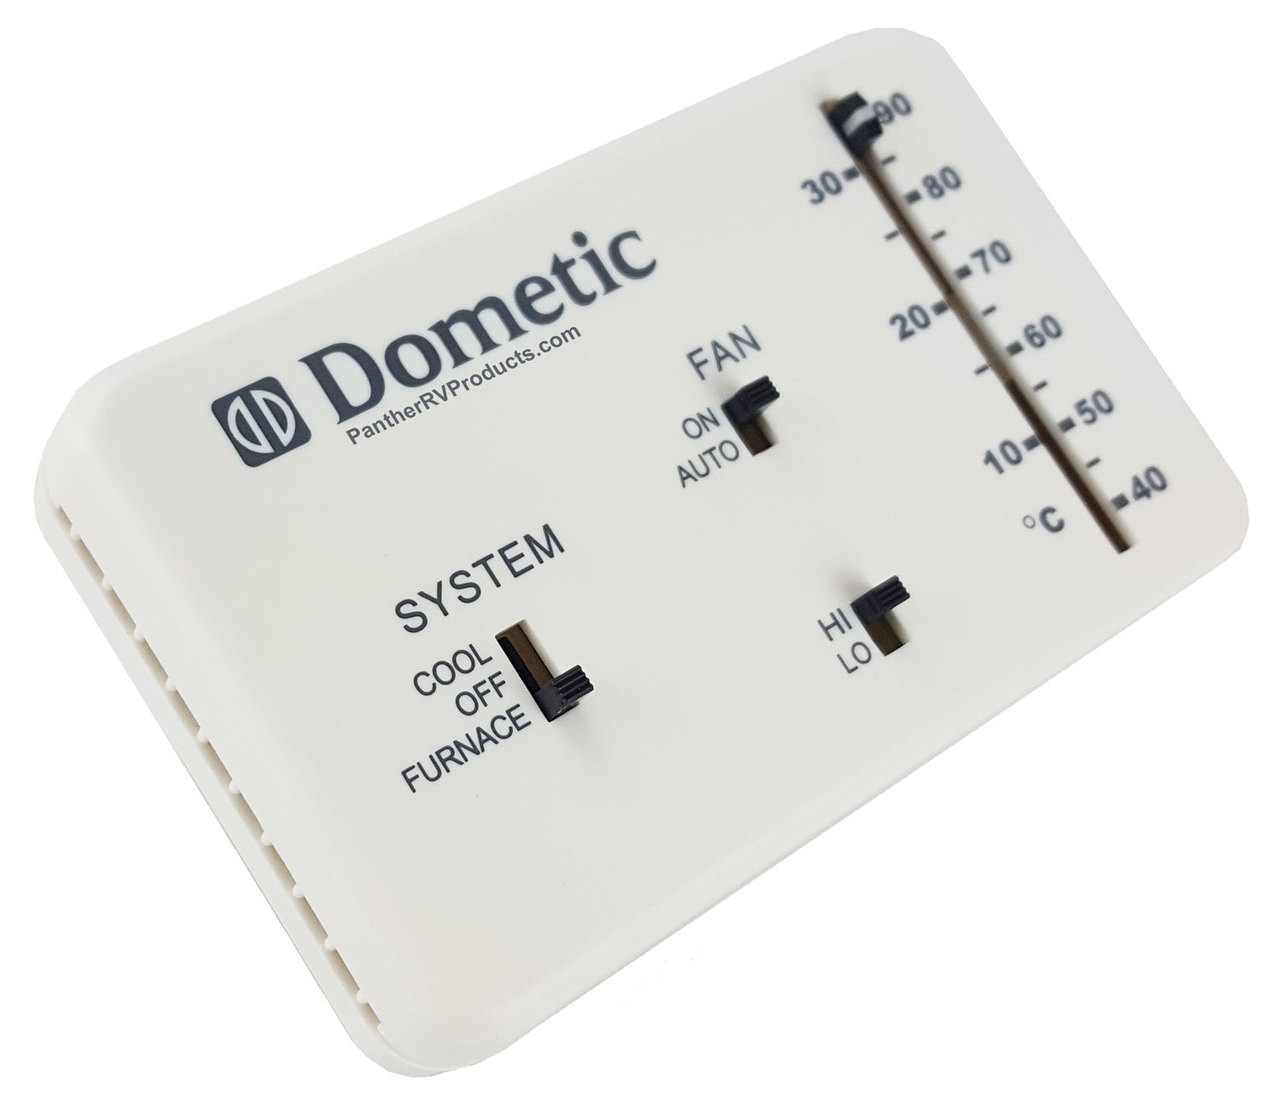 dometic 3106995 032 thermostat 6 wire analog control heat cool duo temp thermostat 7 wire diagram [ 1280 x 1098 Pixel ]